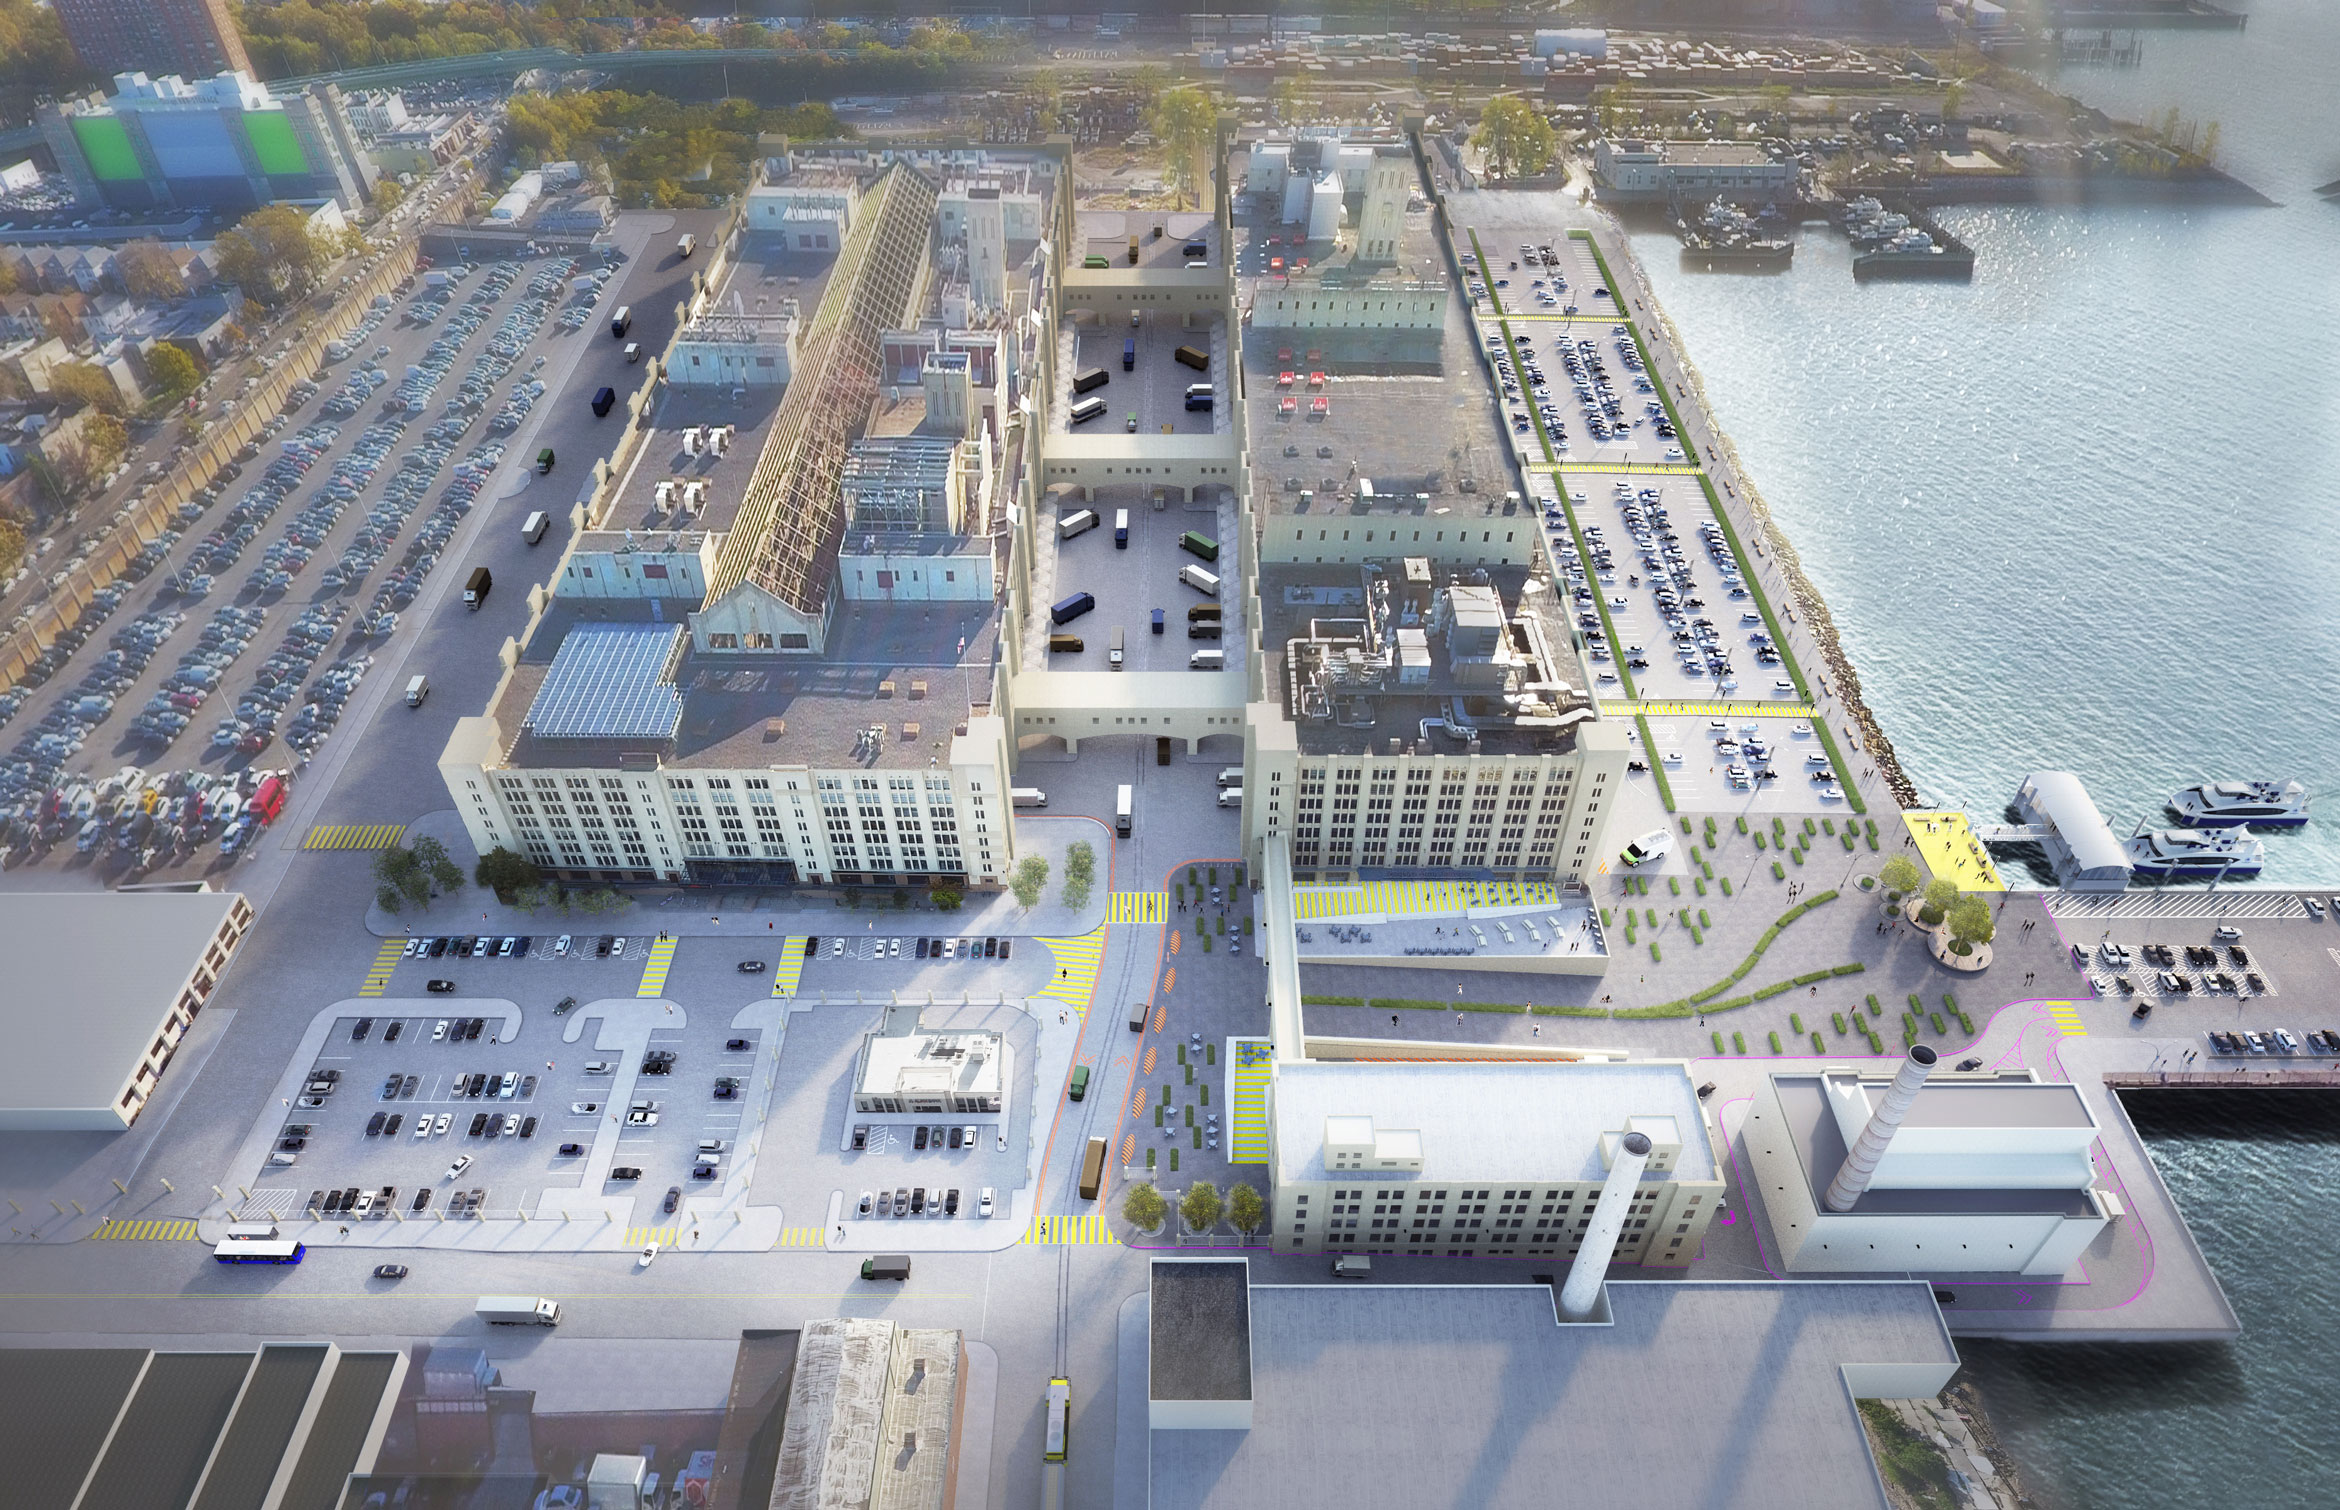 A rendering of the Brooklyn Army Terminal with an existing 8,400-square-foot array (used to power the terminal building itself) depicted on the roof, lower left. At 70,000 square feet, the Sunset Park Solar array will cover a majority of the remaining roof space. Image courtesy of New York City Economic Development Corporation